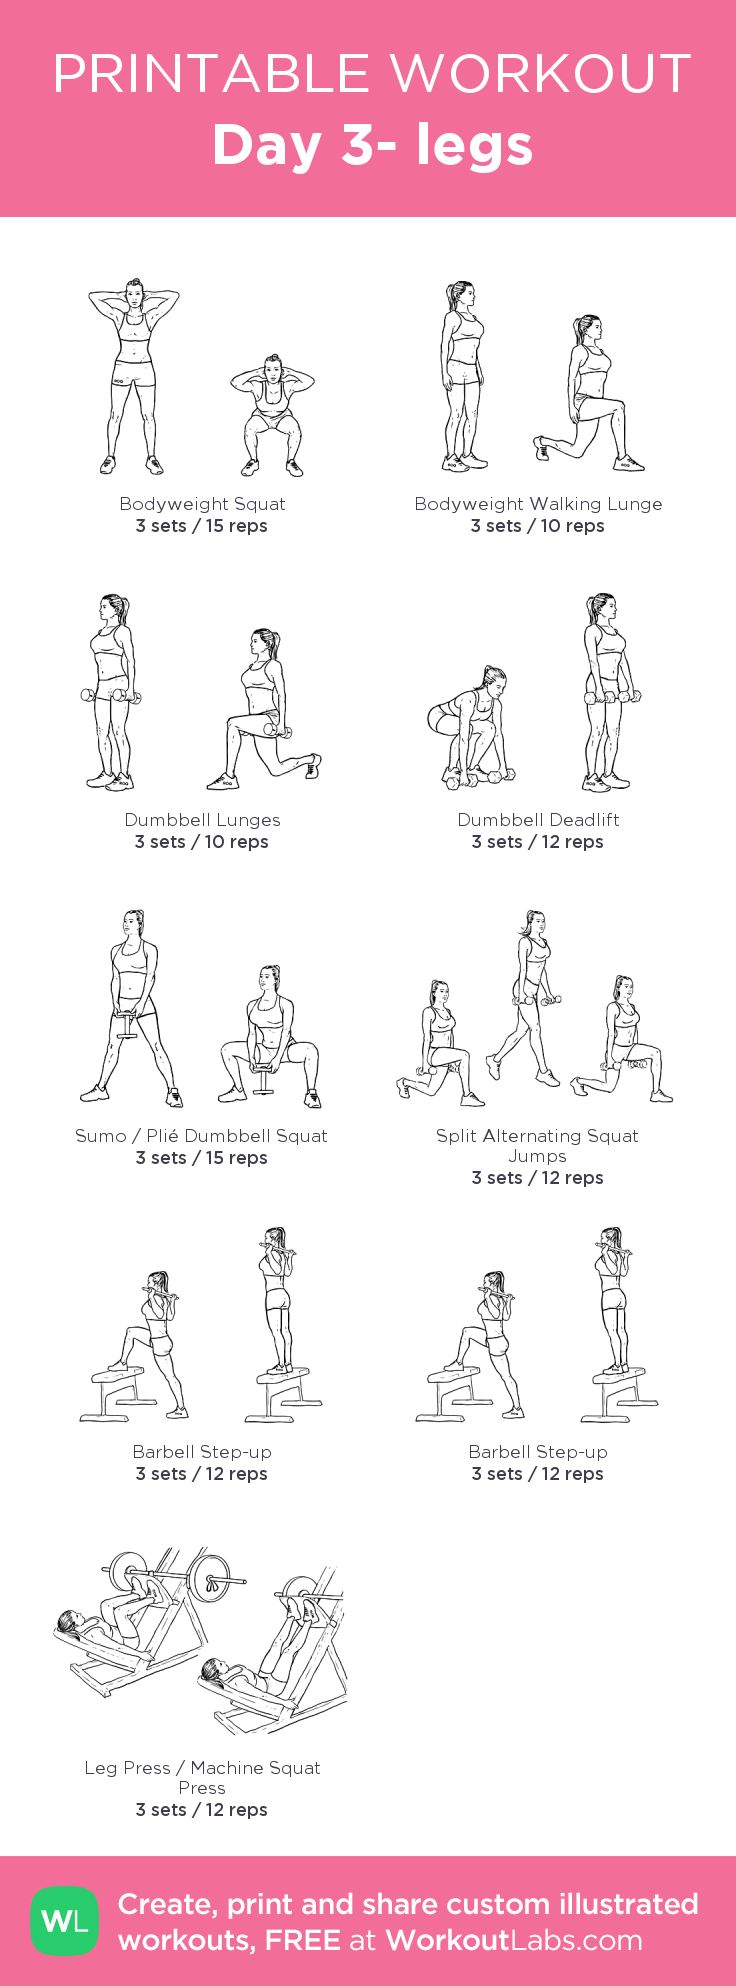 Day 3- legs –my custom workout created at WorkoutLabs.com • Click through to download as printable PDF! #customworkout